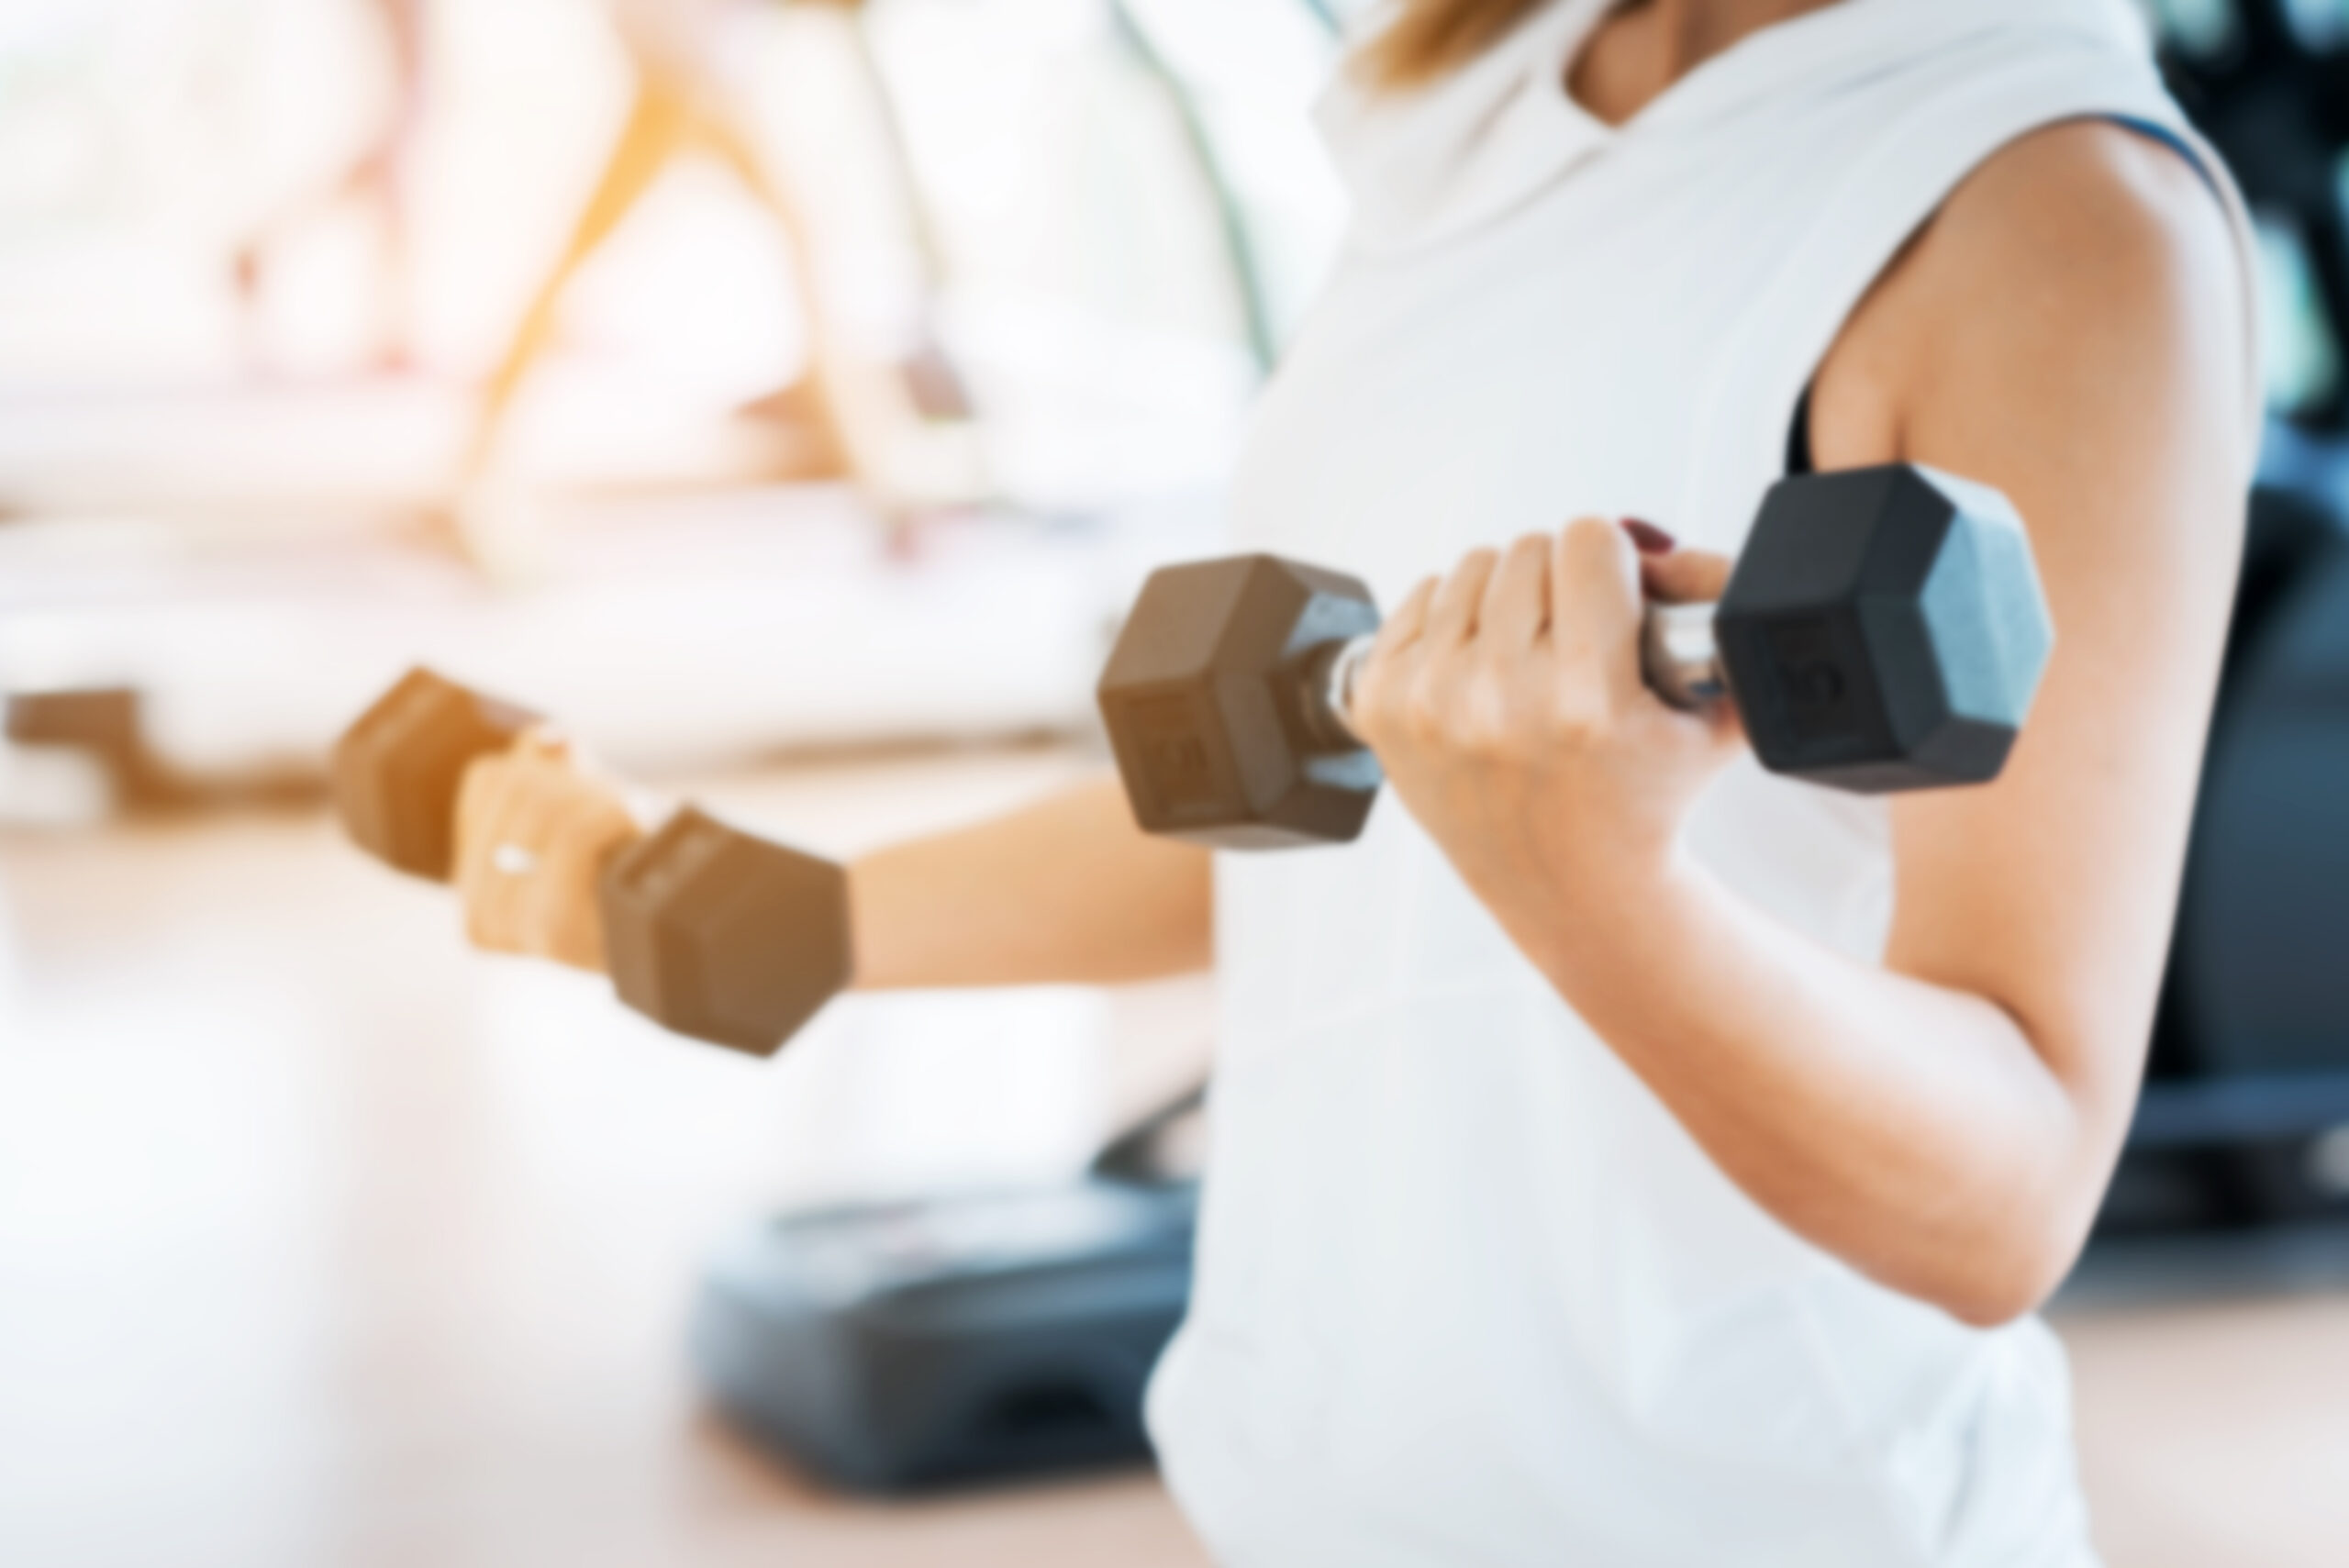 Exercise And Physical Activity As Medicine